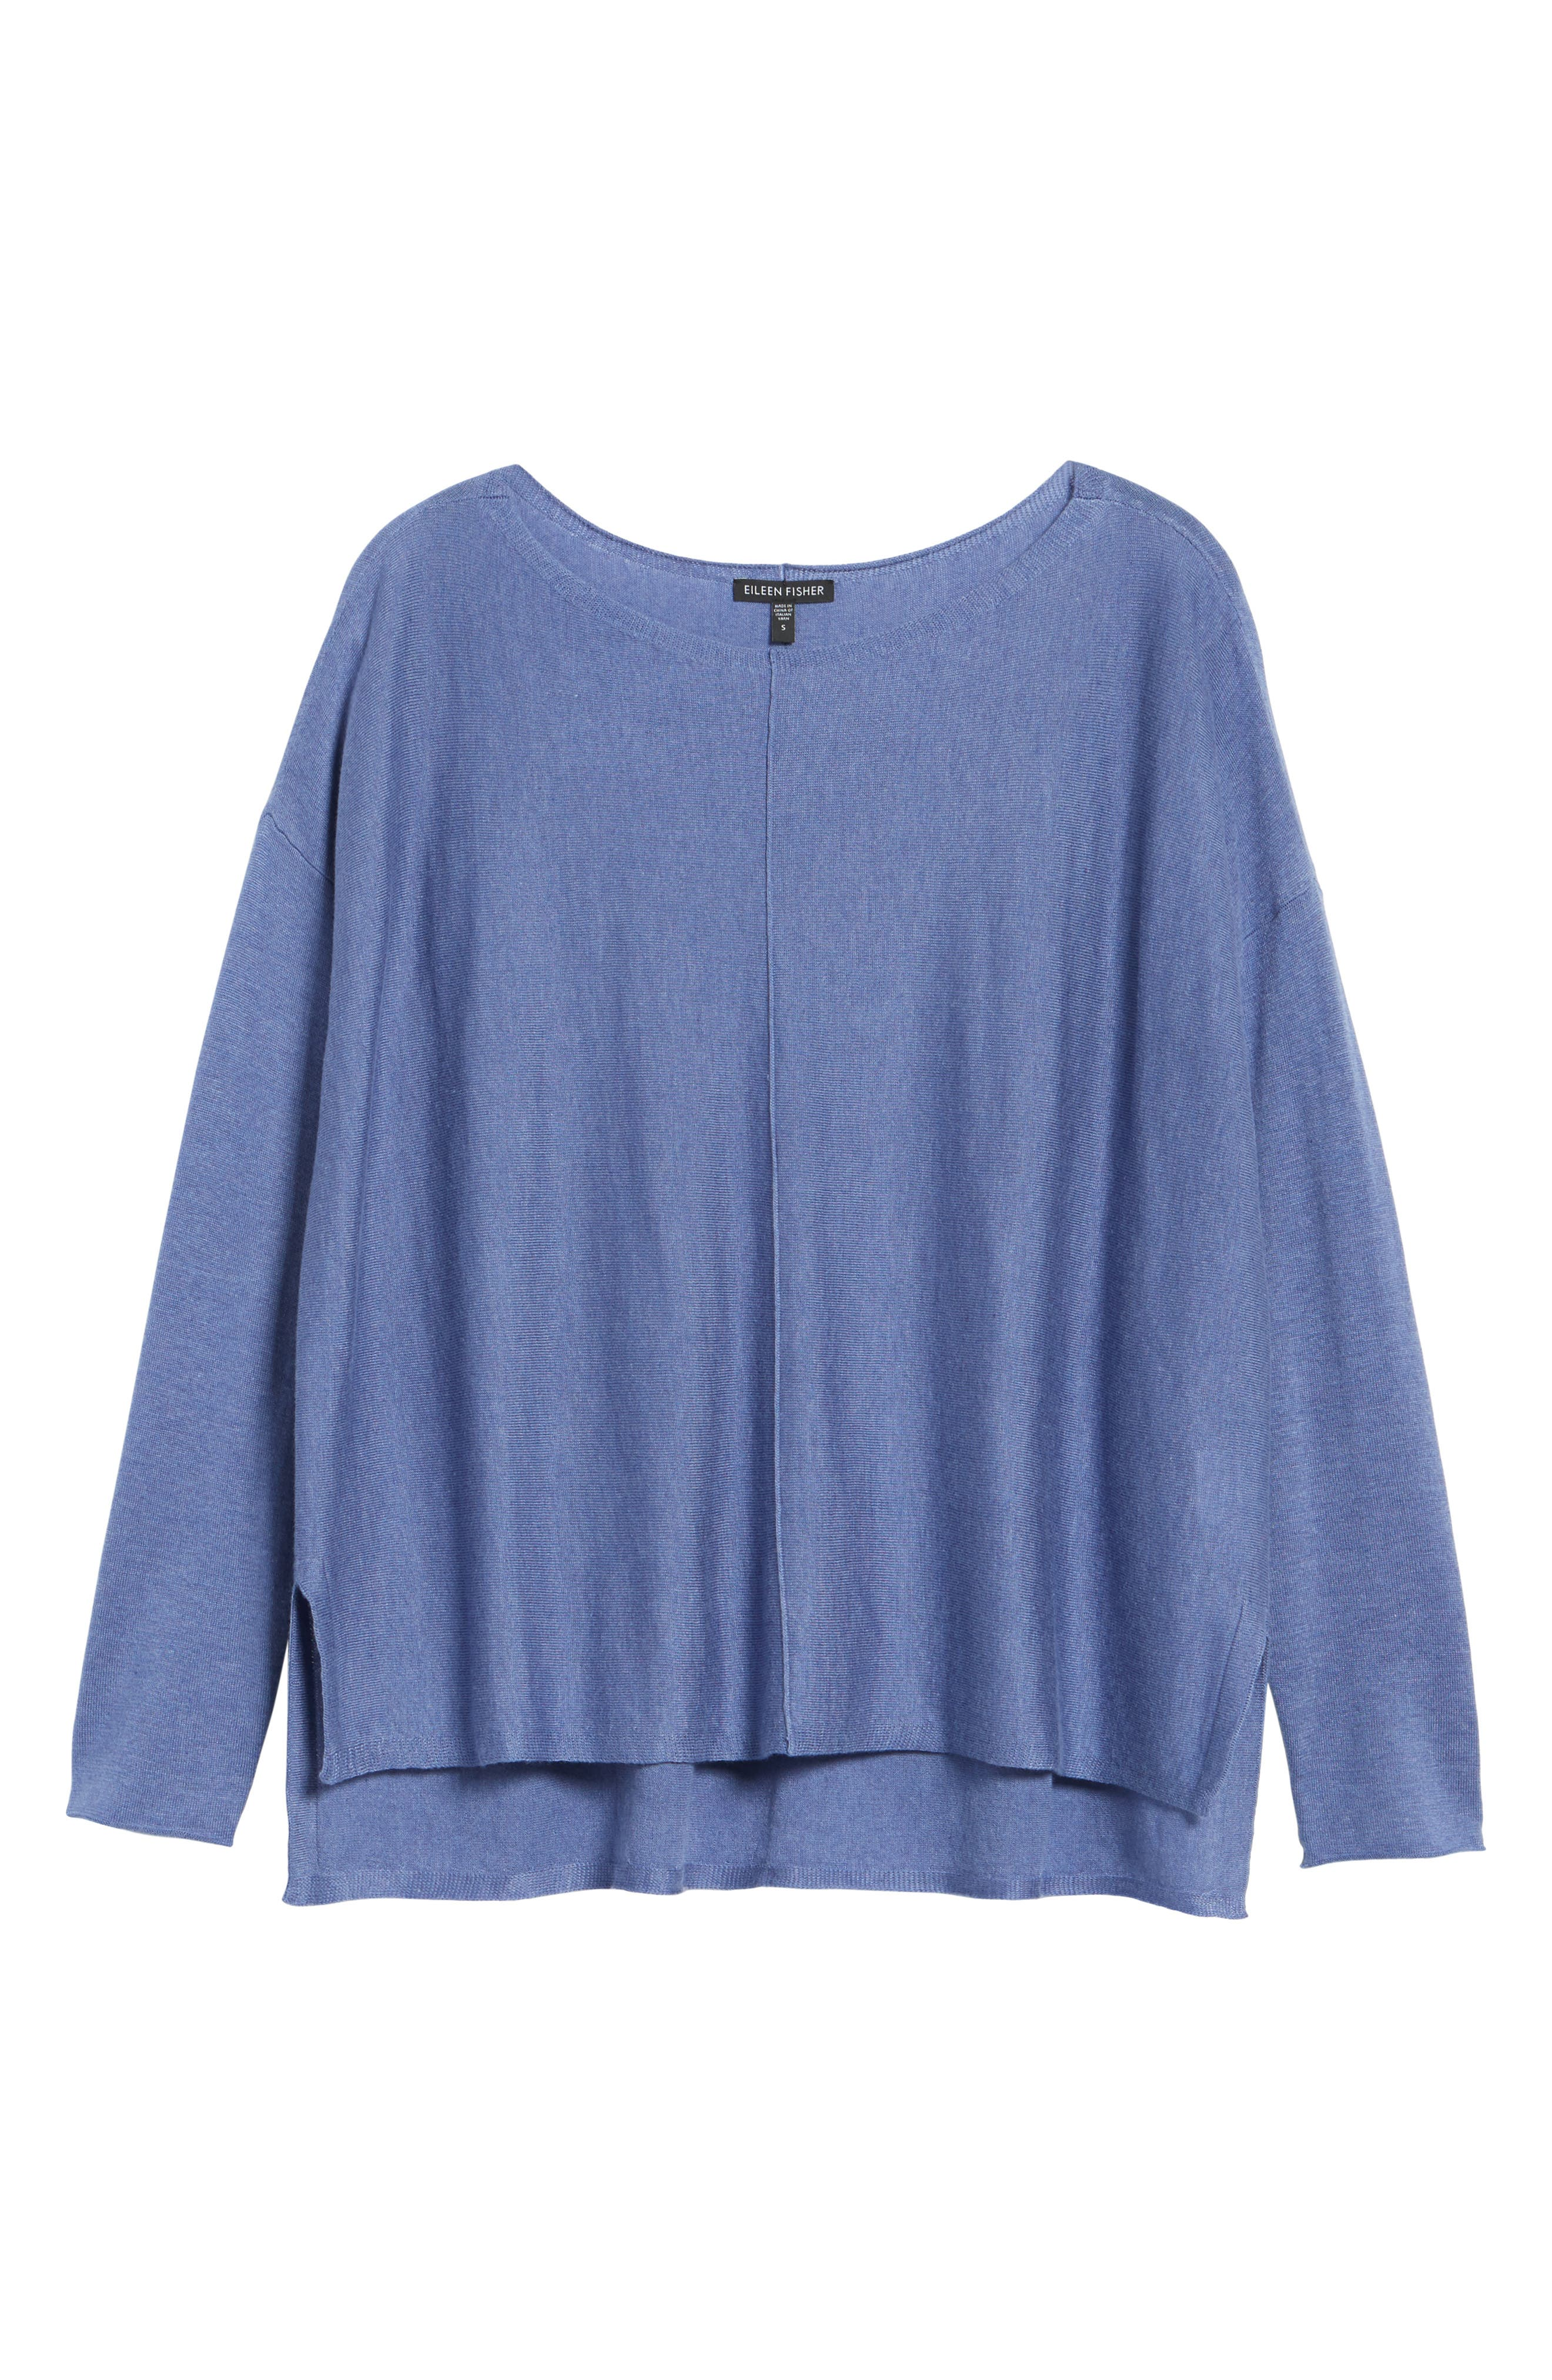 Tencel<sup>®</sup> Lyocell Blend High/Low Sweater,                             Alternate thumbnail 33, color,